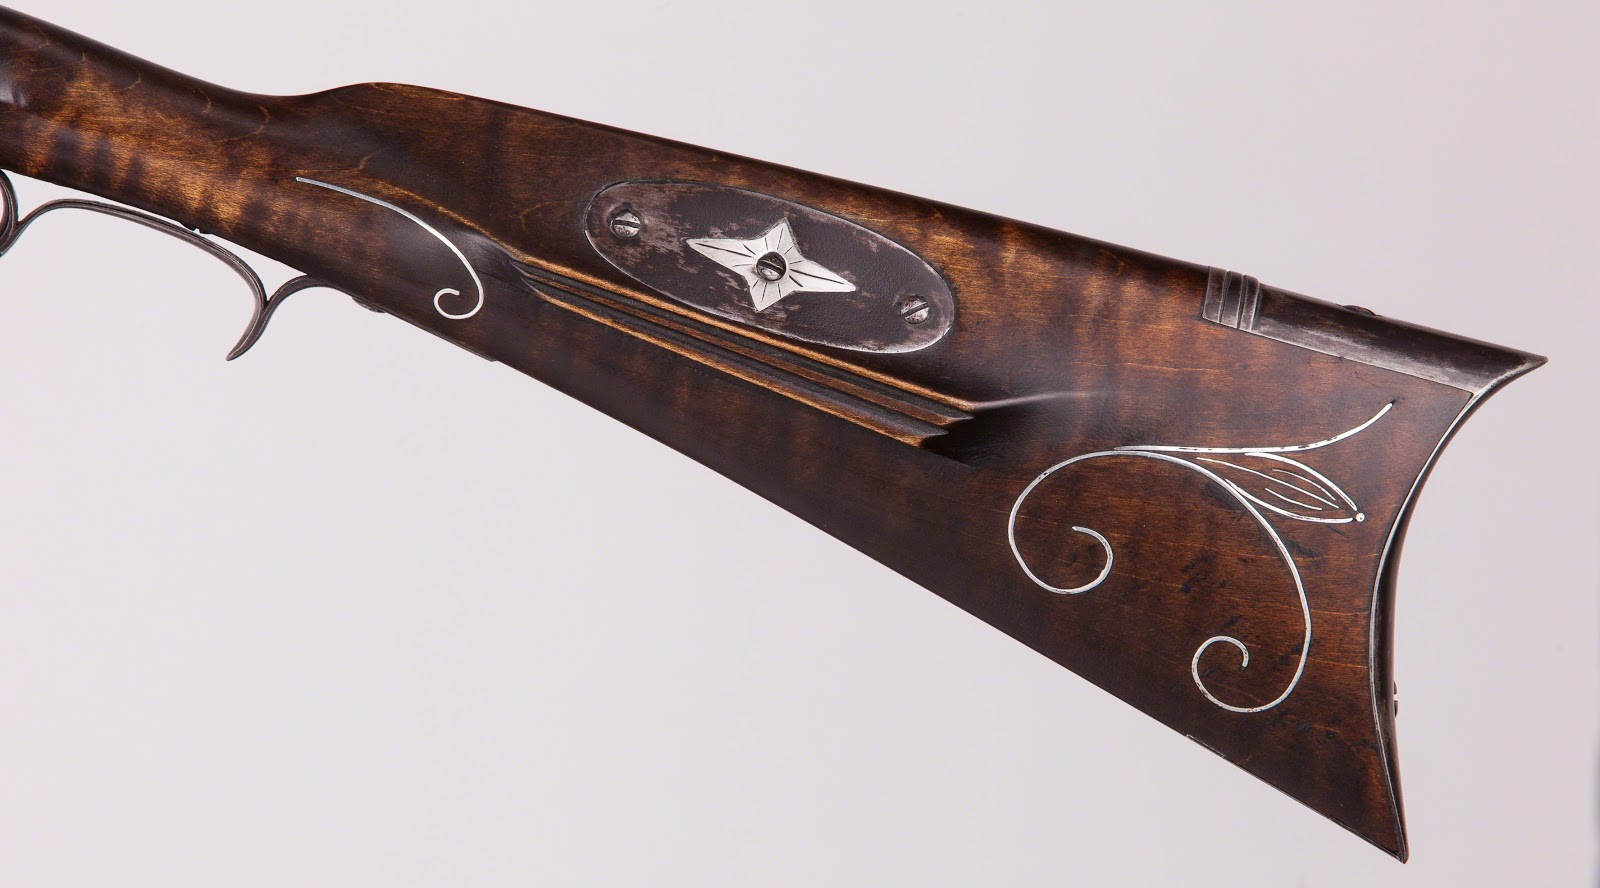 Contemporary Makers: Iron Mounted Southern Longrifle by Mark Elliott